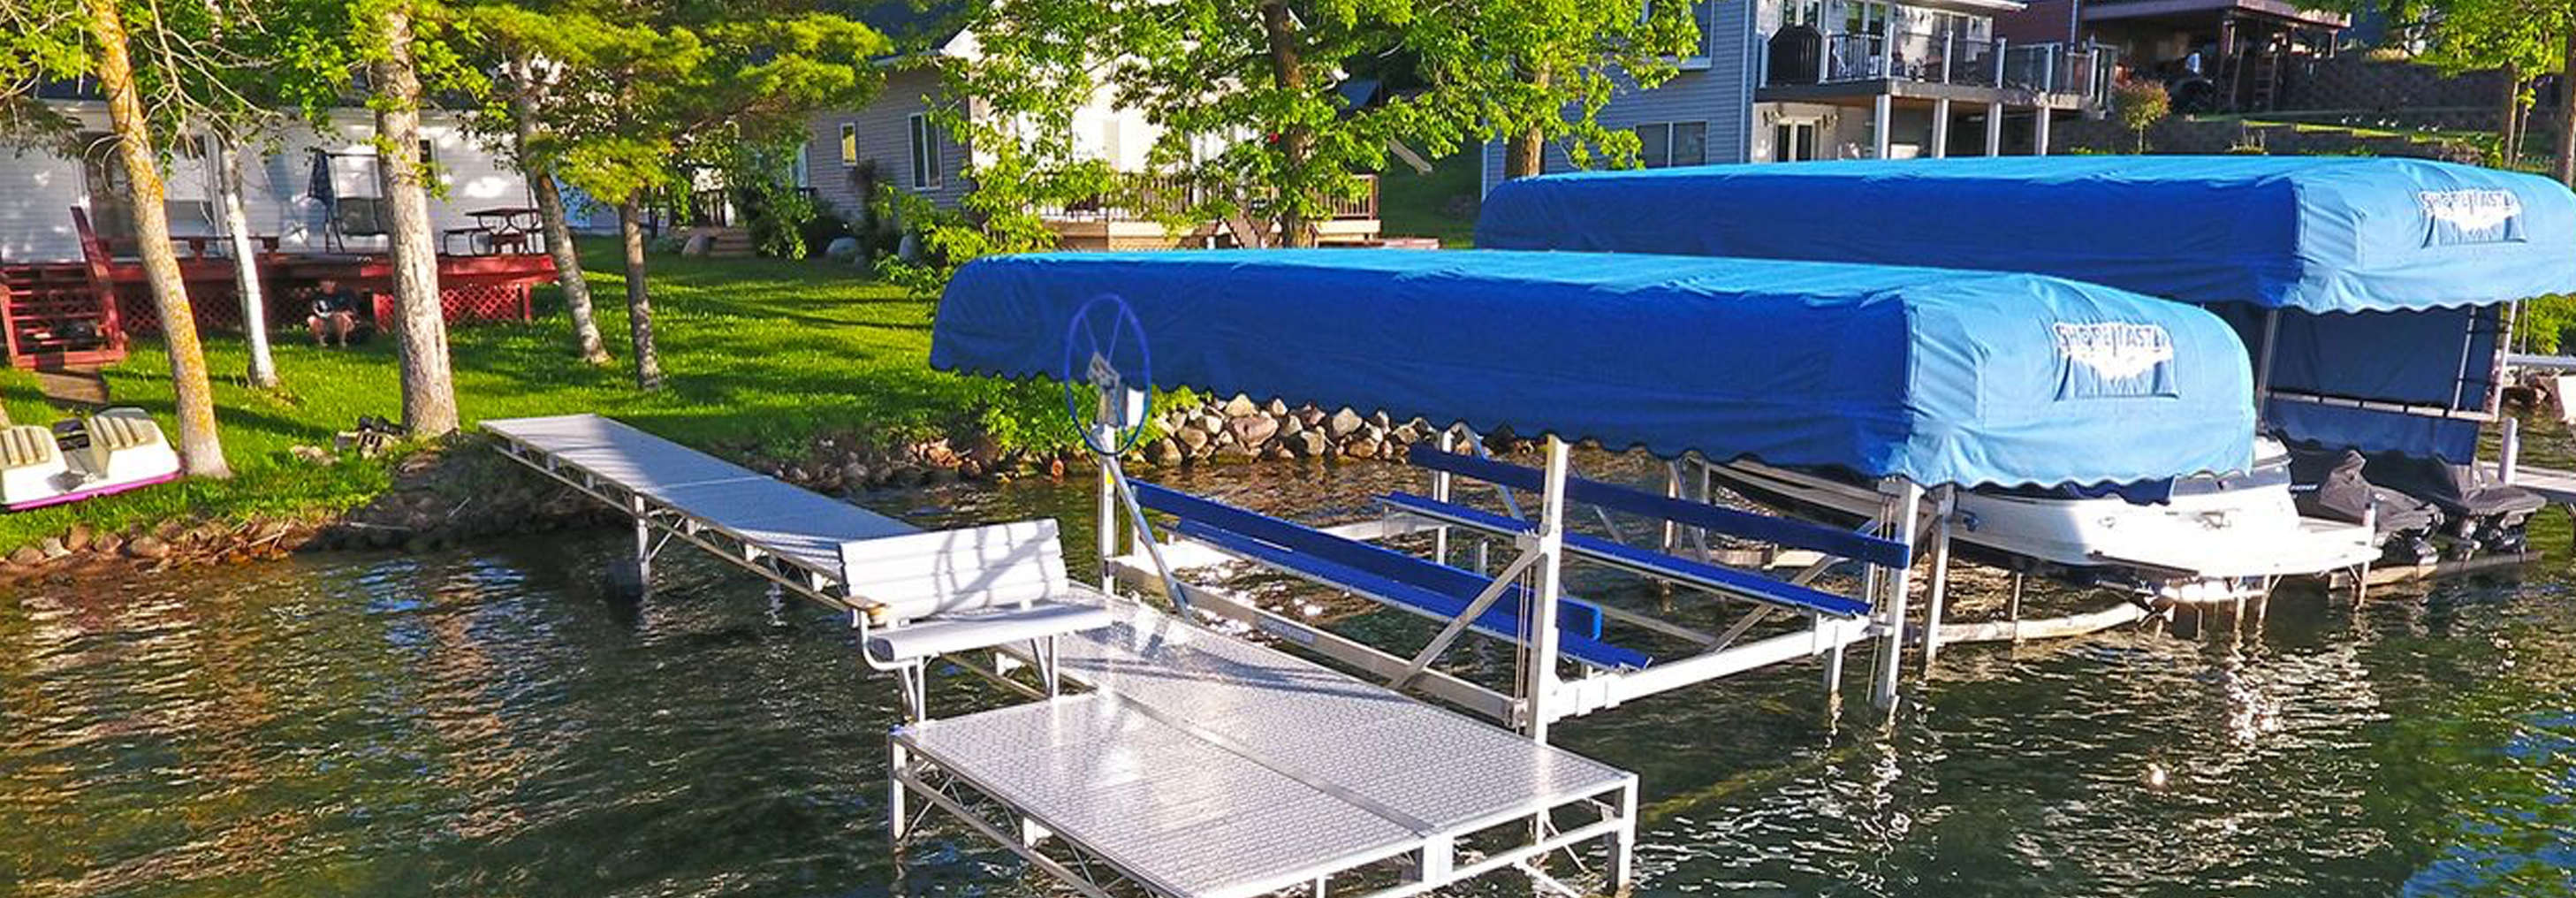 Versatile boat lifts for any watercraft